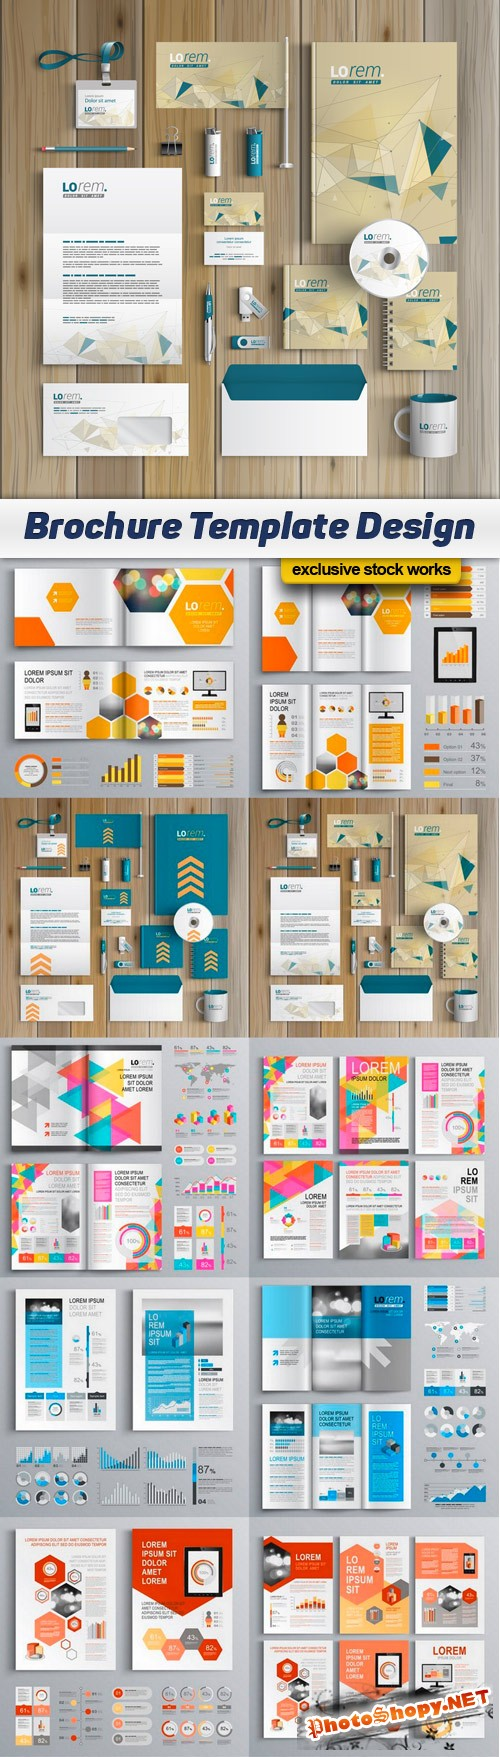 Brochure Template Design - 10 EPS